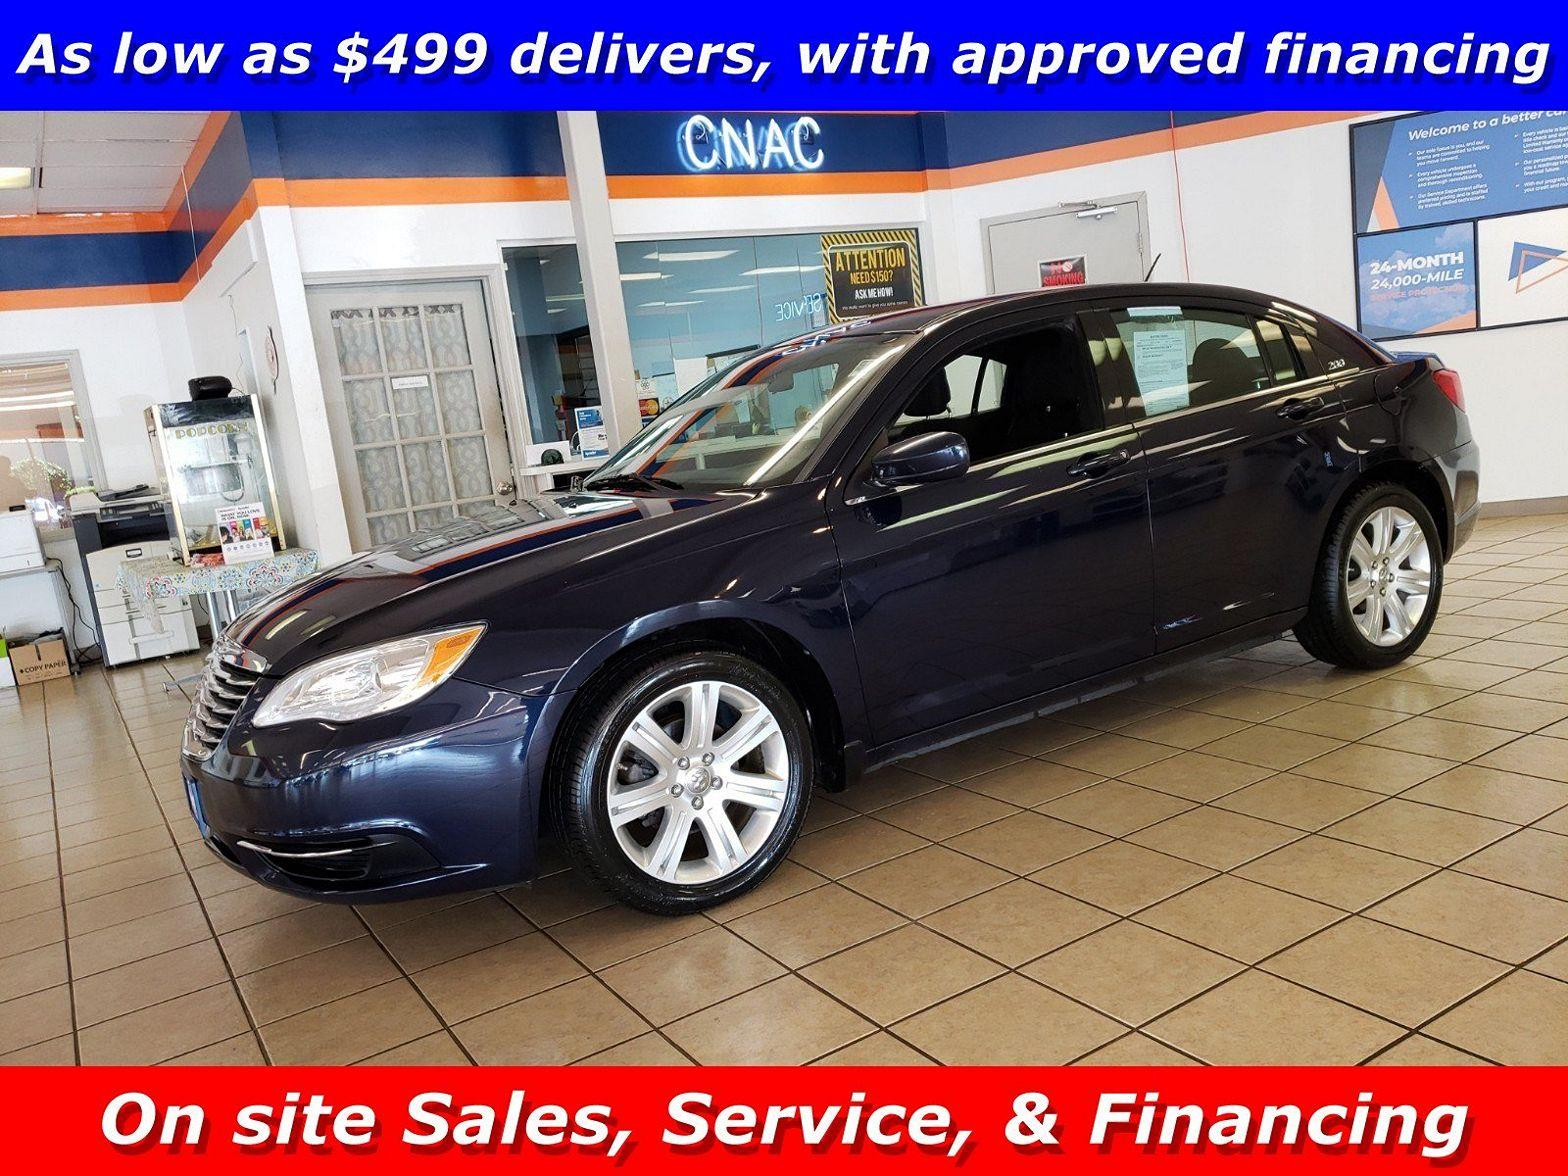 2013 Chrysler 200 $499